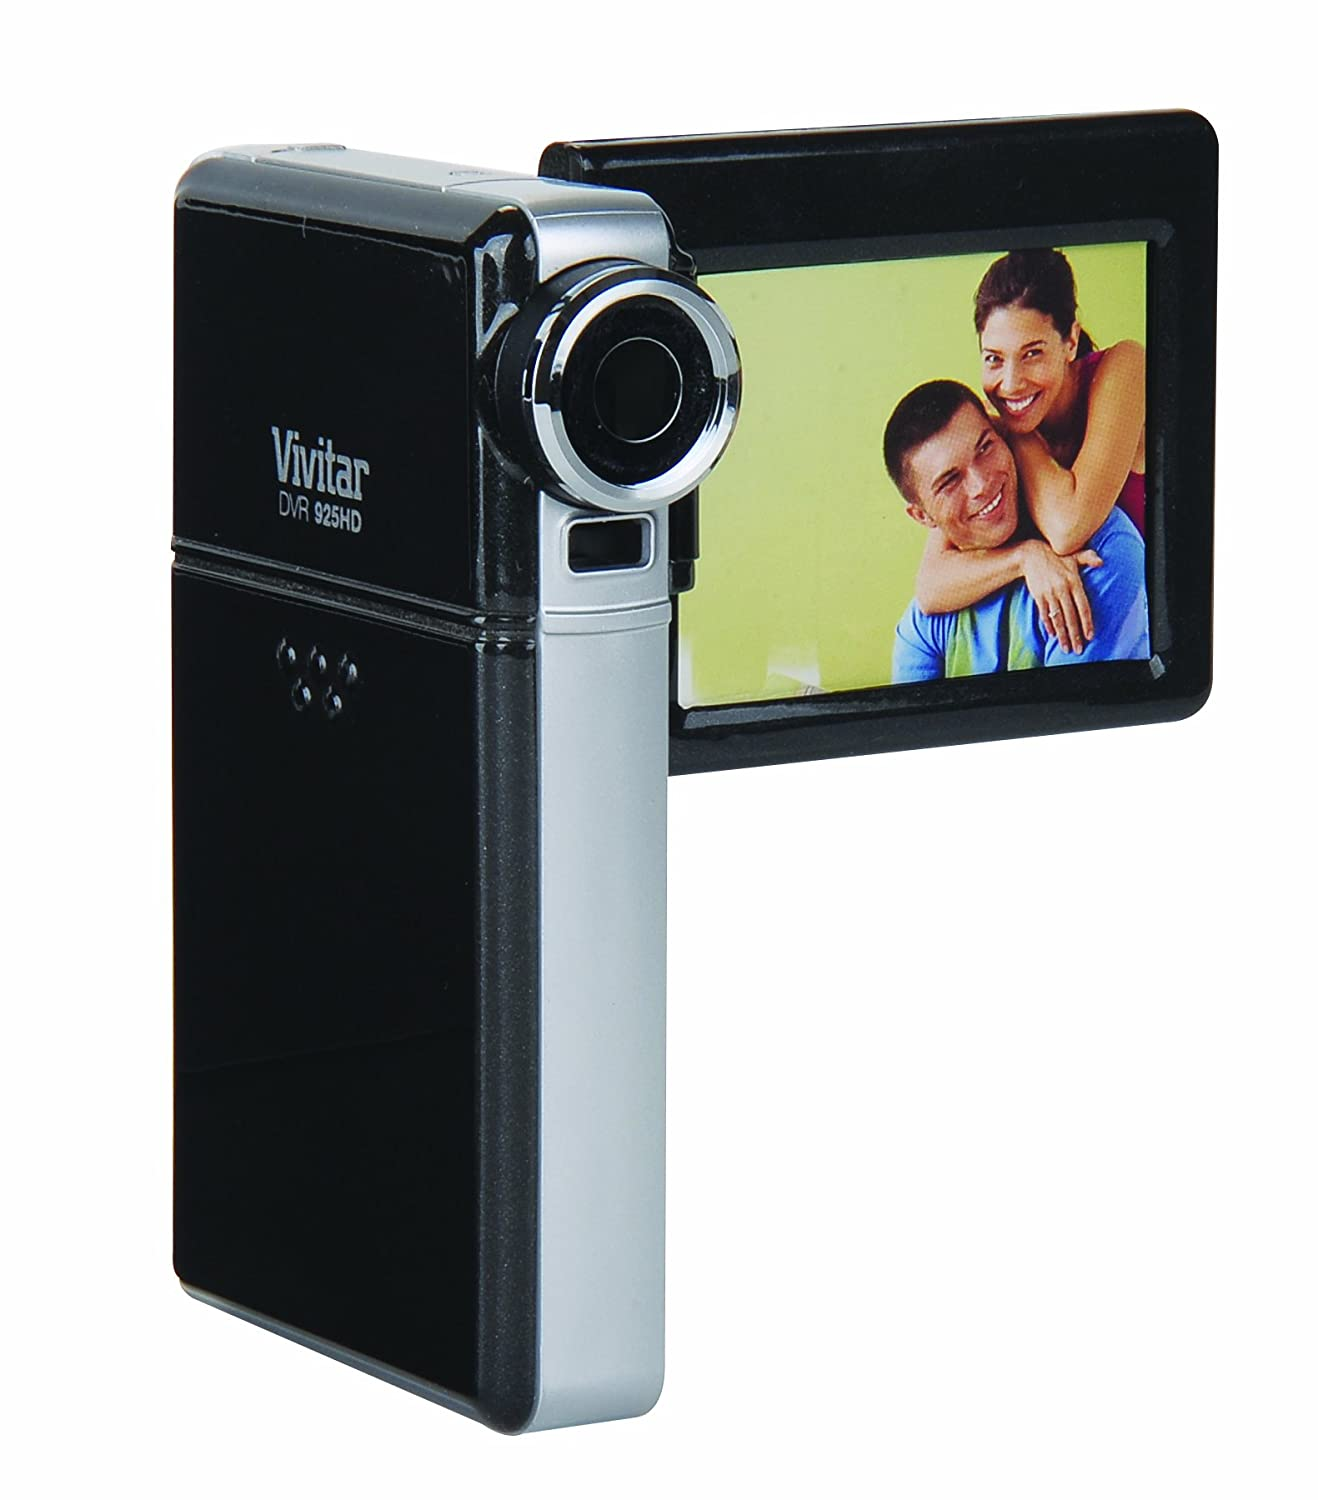 Vivitar DVR925HD-CHKIT-QVC 8.1 MP HD Digital Video Recorder with 2-Inch LCD Screen (Black)